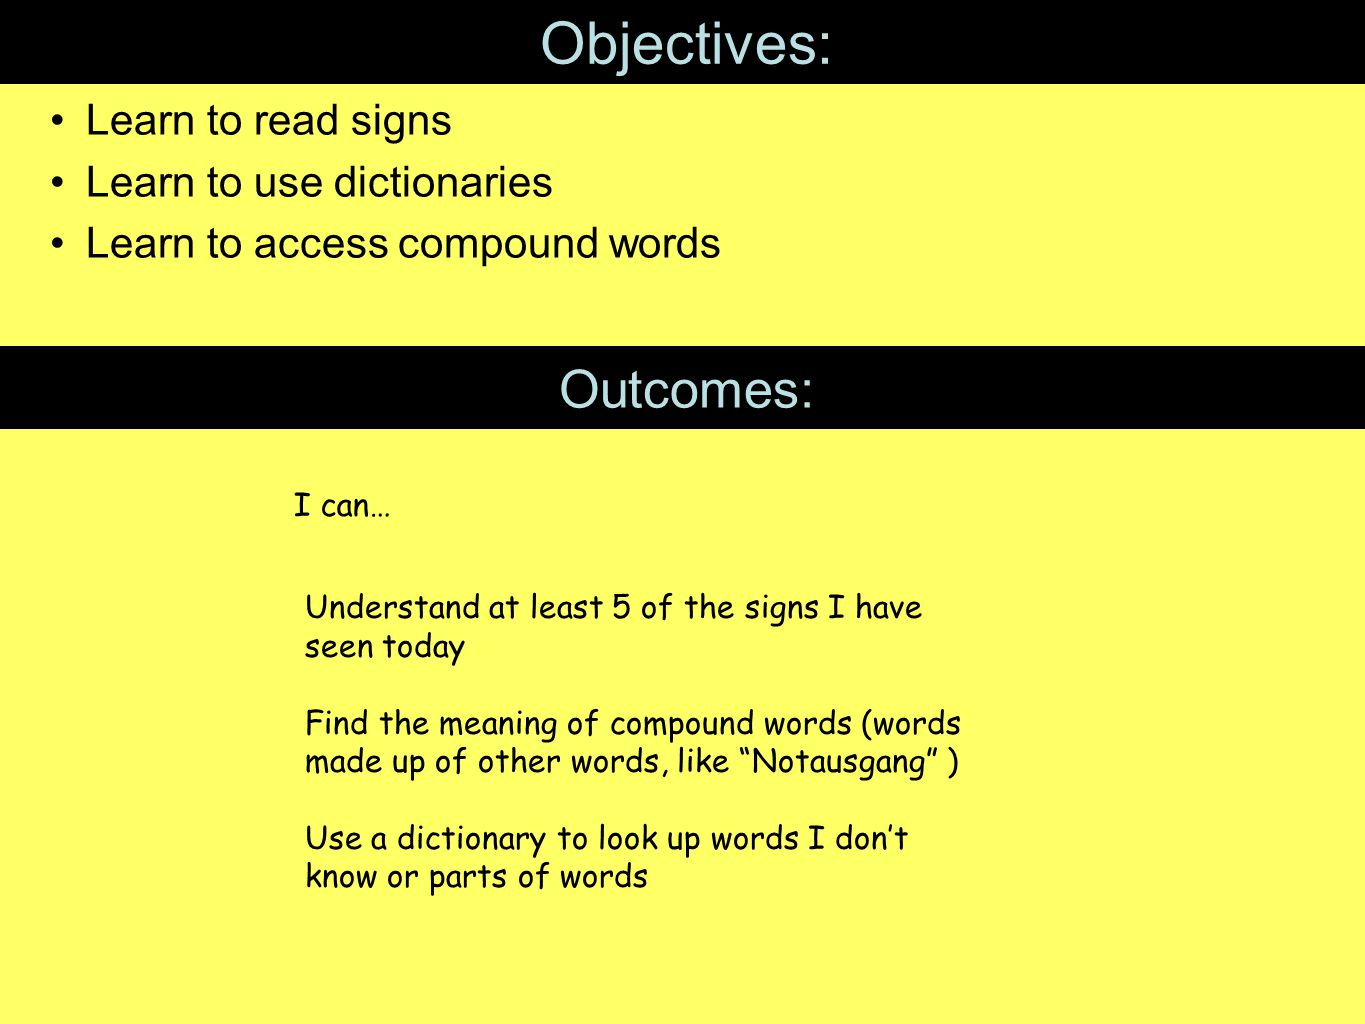 Objectives: Learn to read signs Learn to use dictionaries Learn to access compound words Outcomes: I can… Understand at least 5 of the signs I have seen today Find the meaning of compound words (words made up of other words, like Notausgang ) Use a dictionary to look up words I don't know or parts of words